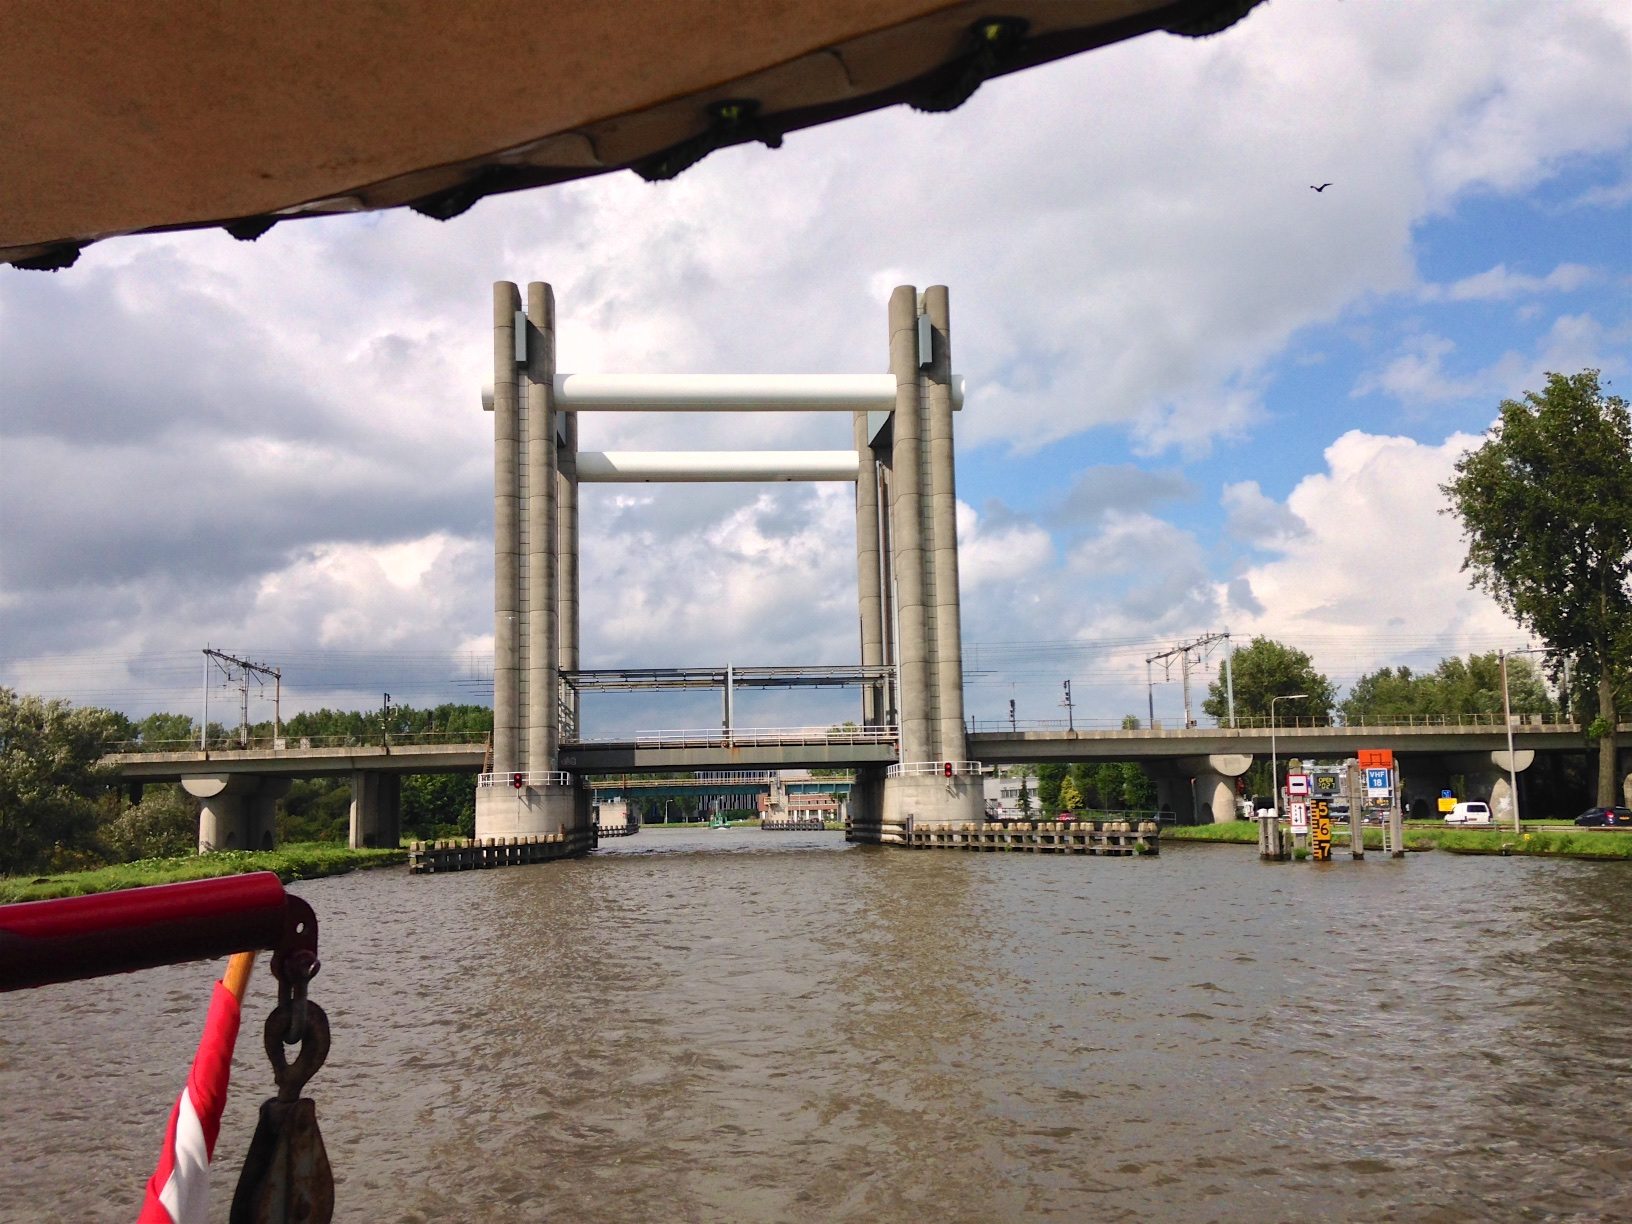 Not scenic: but an impressive lifting (railway) bridge. No problem for 20 m masts under this one.